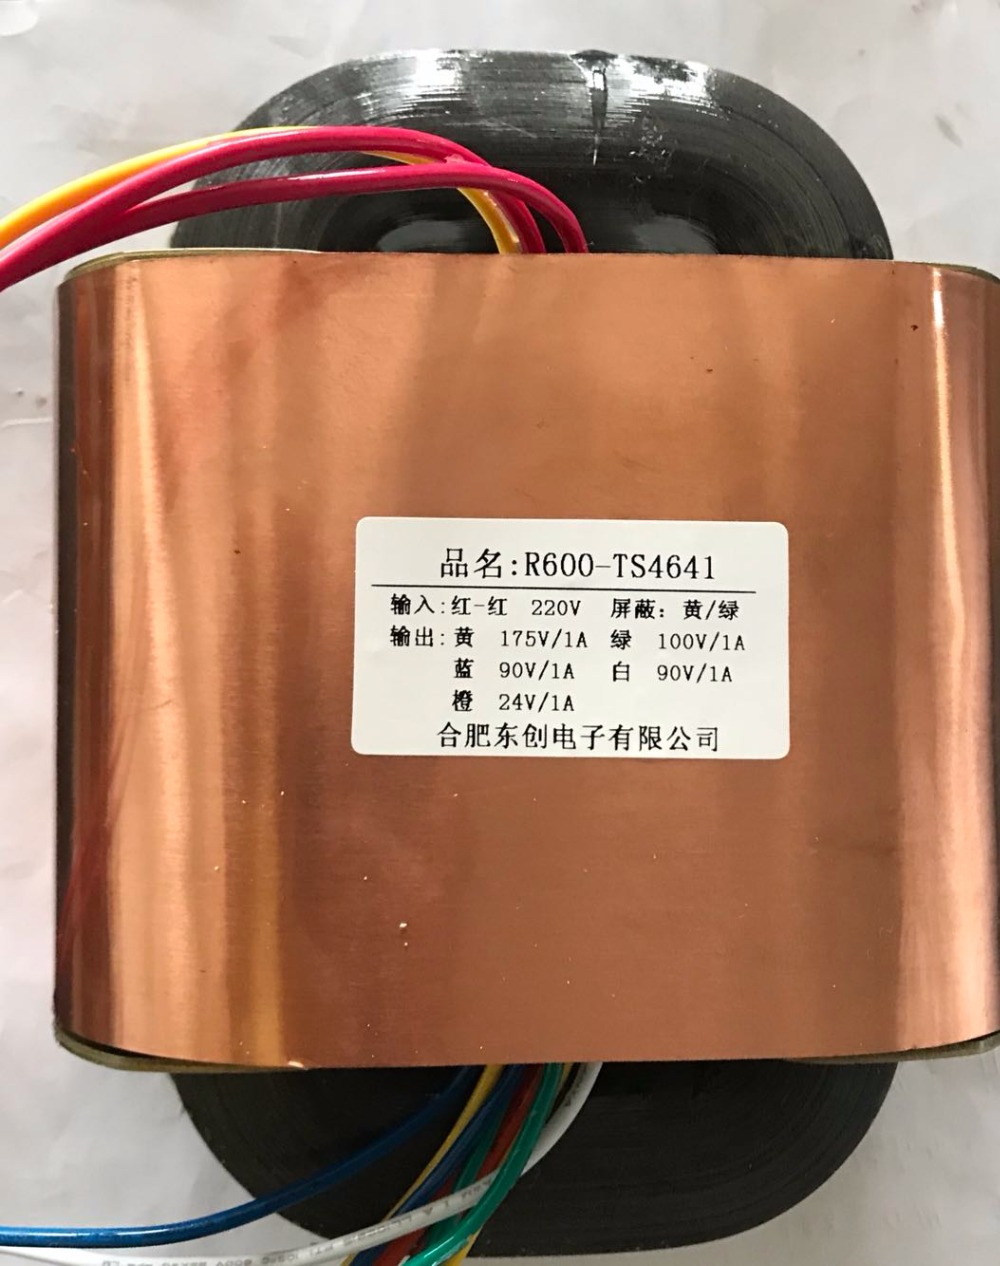 175V 1A 100V 1A 2*90V 1A 24V 1A R Core Transformer 480VA R600 custom transformer 220V copper shield Power amplifier baby girl clothes bowknot dress birthday wedding girl floral princess party dress summer tutu girl dresses children clothing